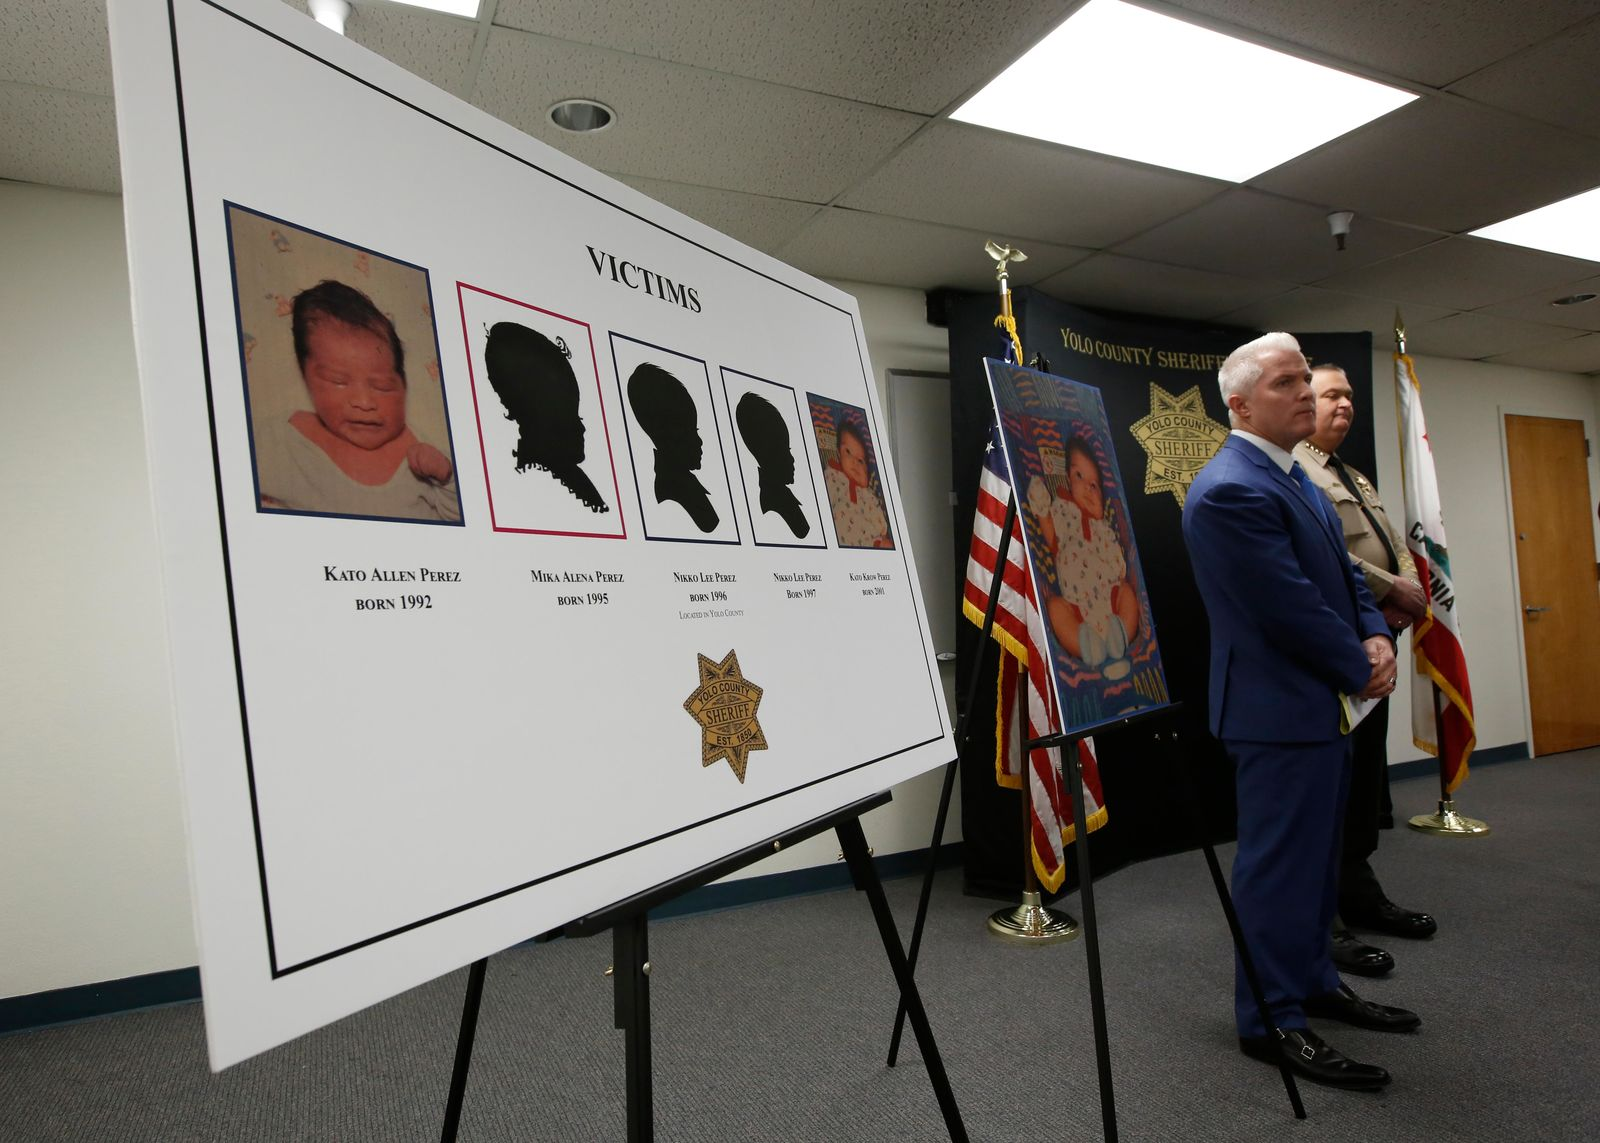 A poster of five infants believed to be killed by their father is displayed during a news conference, attended by Yolo County District Attorney Jeff Reisig, left, and Sheriff Tom Lopez, right, in Woodland, Calif., Monday, Jan. 27, 2020. Paul Perez, 57, has been arrested in the decades-old killings of five of his infant children, a case the sheriff said had haunted his agency for years, the Yolo County Sheriff's Office said Monday, Jan. 27, 2020. (AP Photo/Rich Pedroncelli)